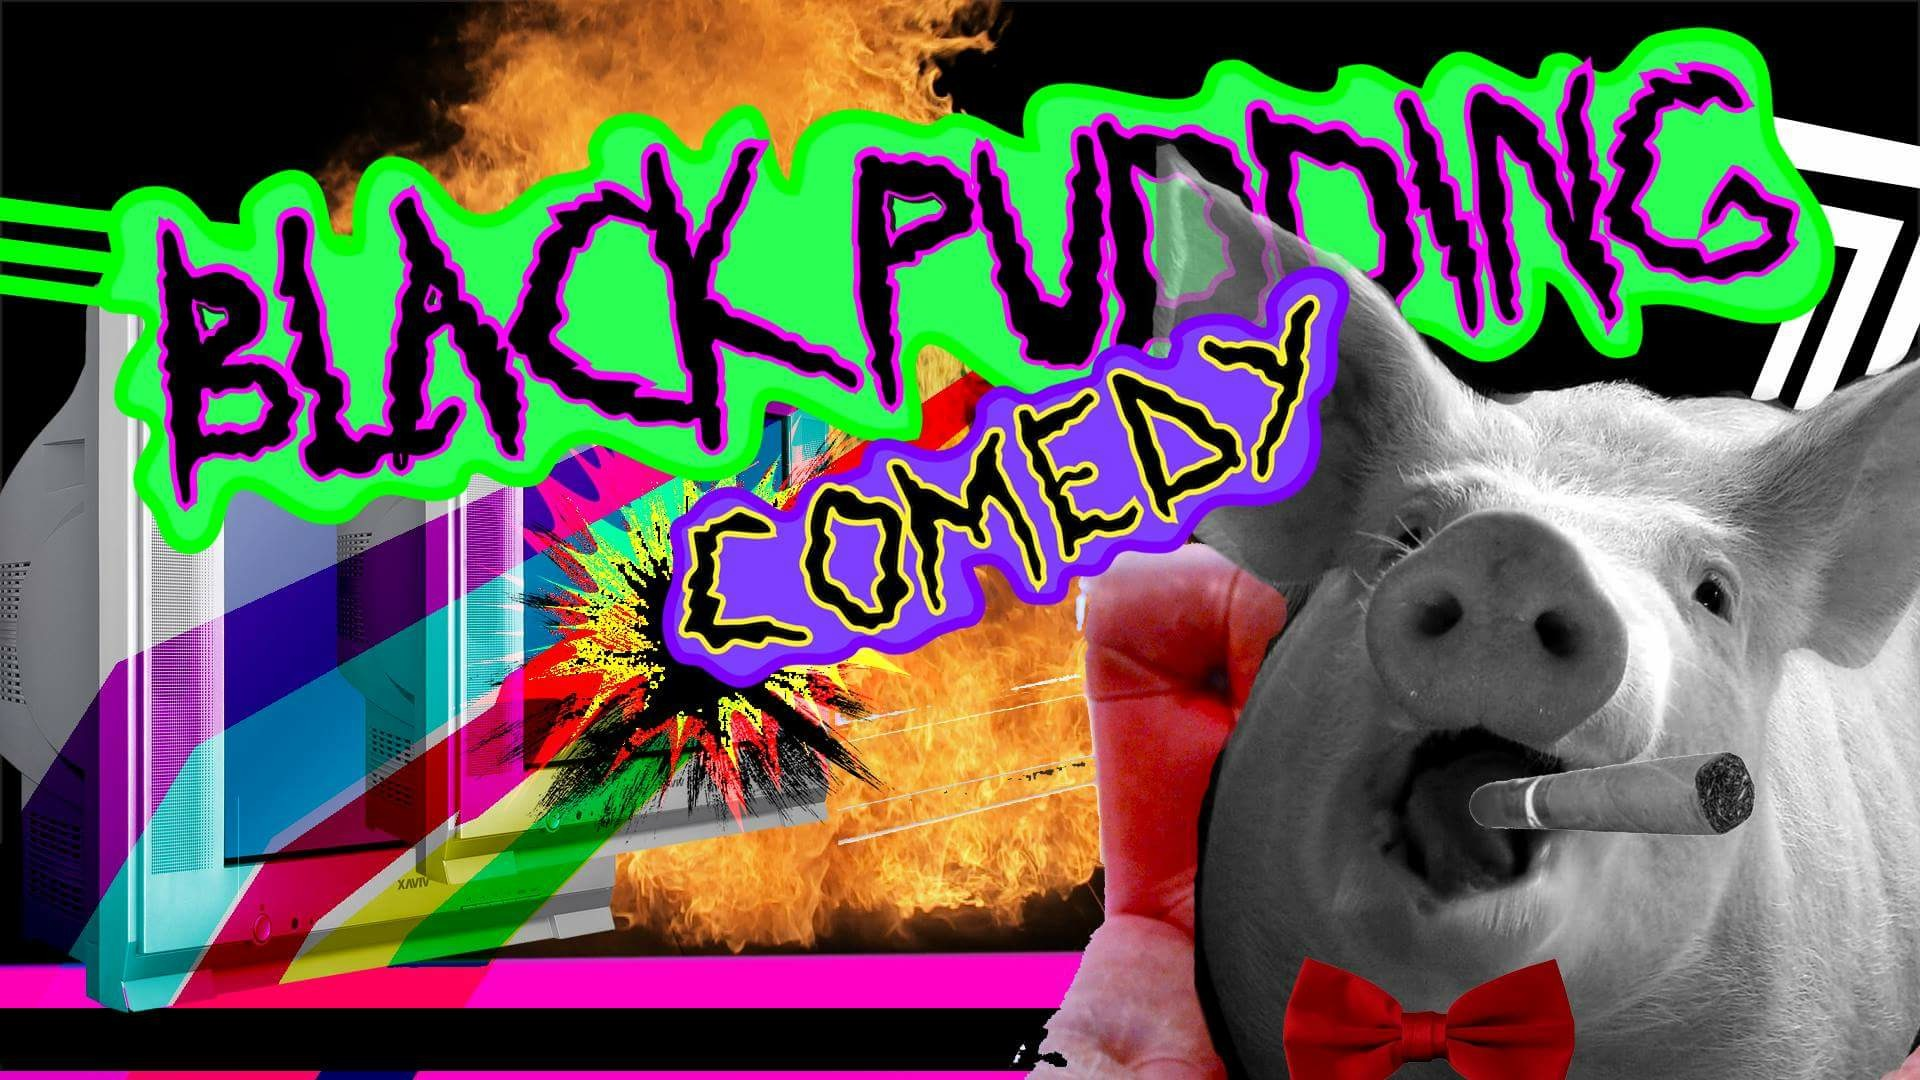 Black Pudding Comedy